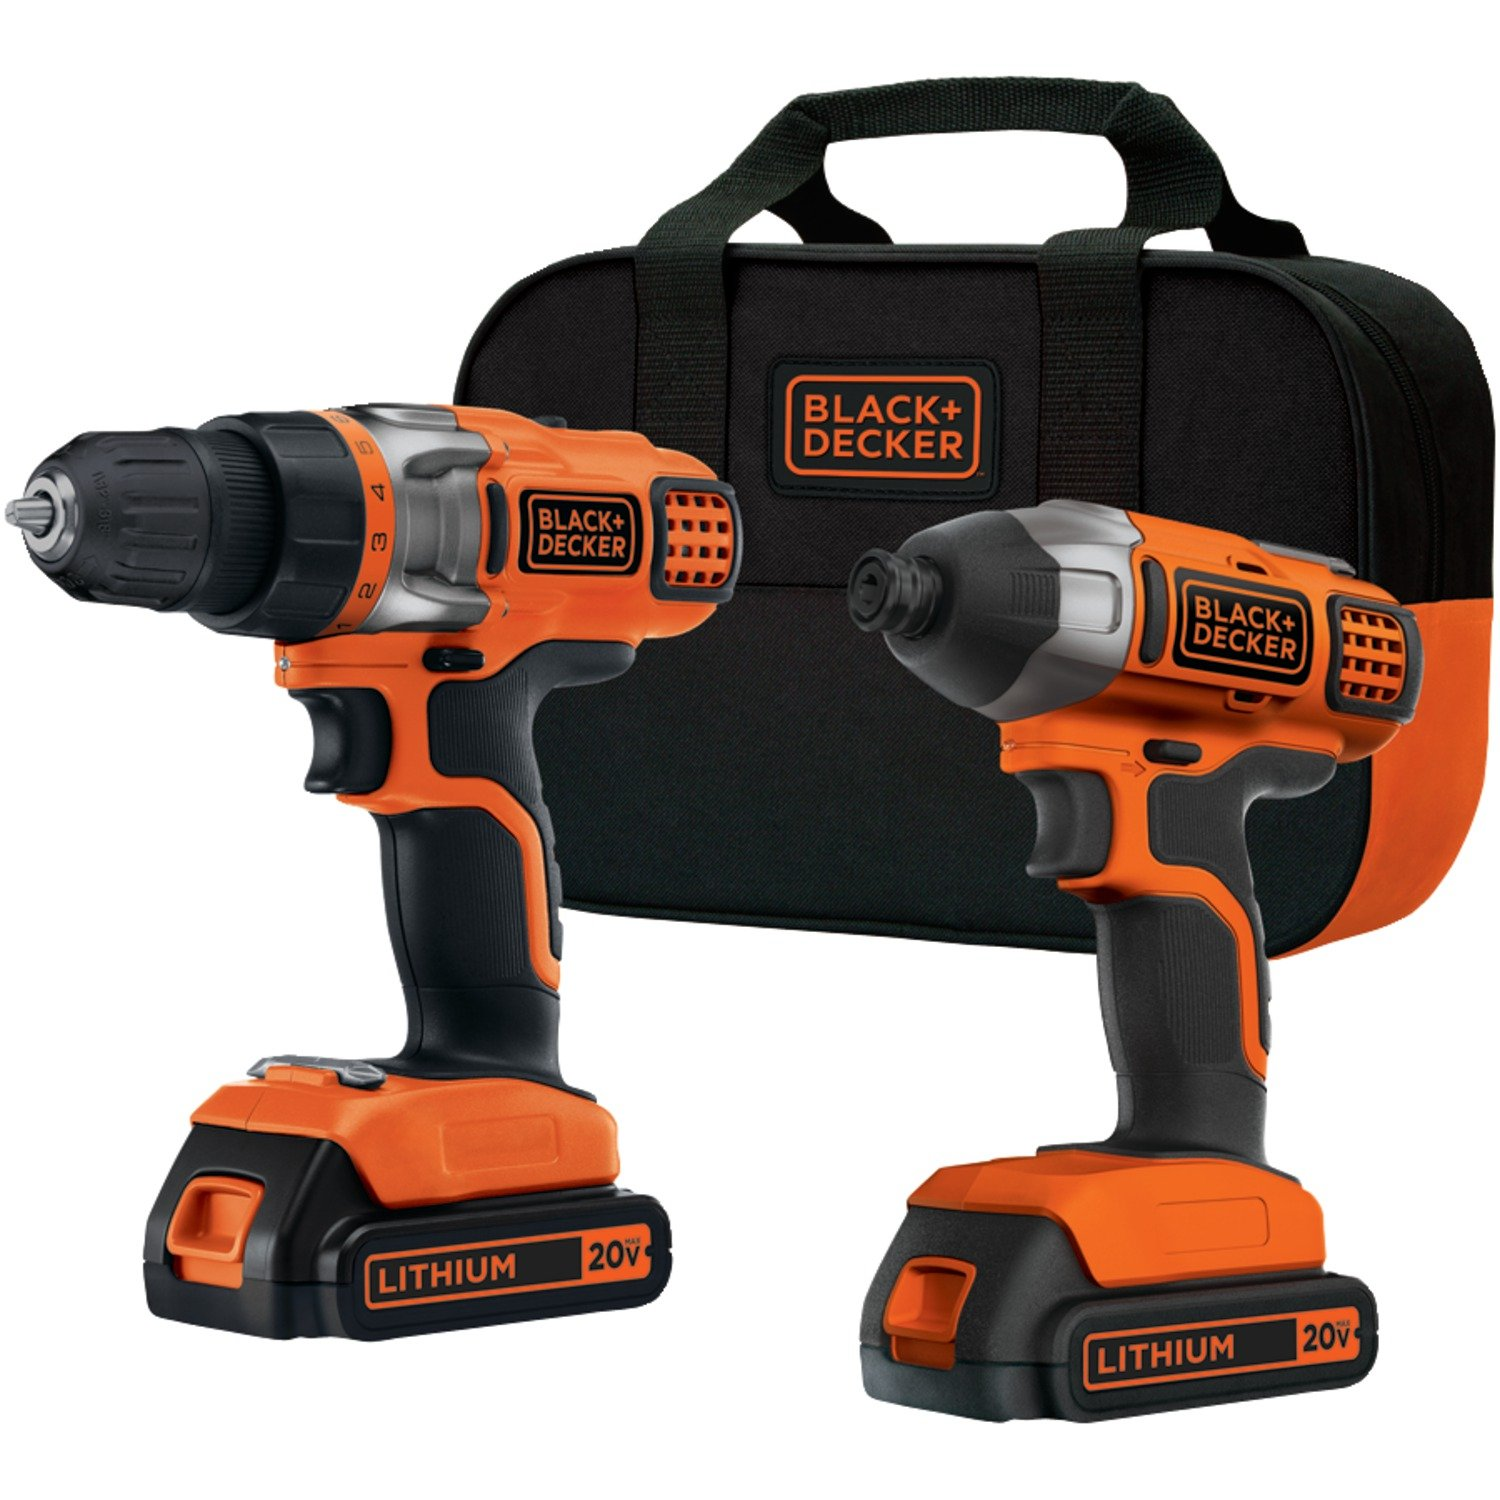 black and decker tools. black+decker bdcd220ia 20-volt max lithium-ion drill/driver and impact driver with 2 batteries - power drills amazon.com black decker tools